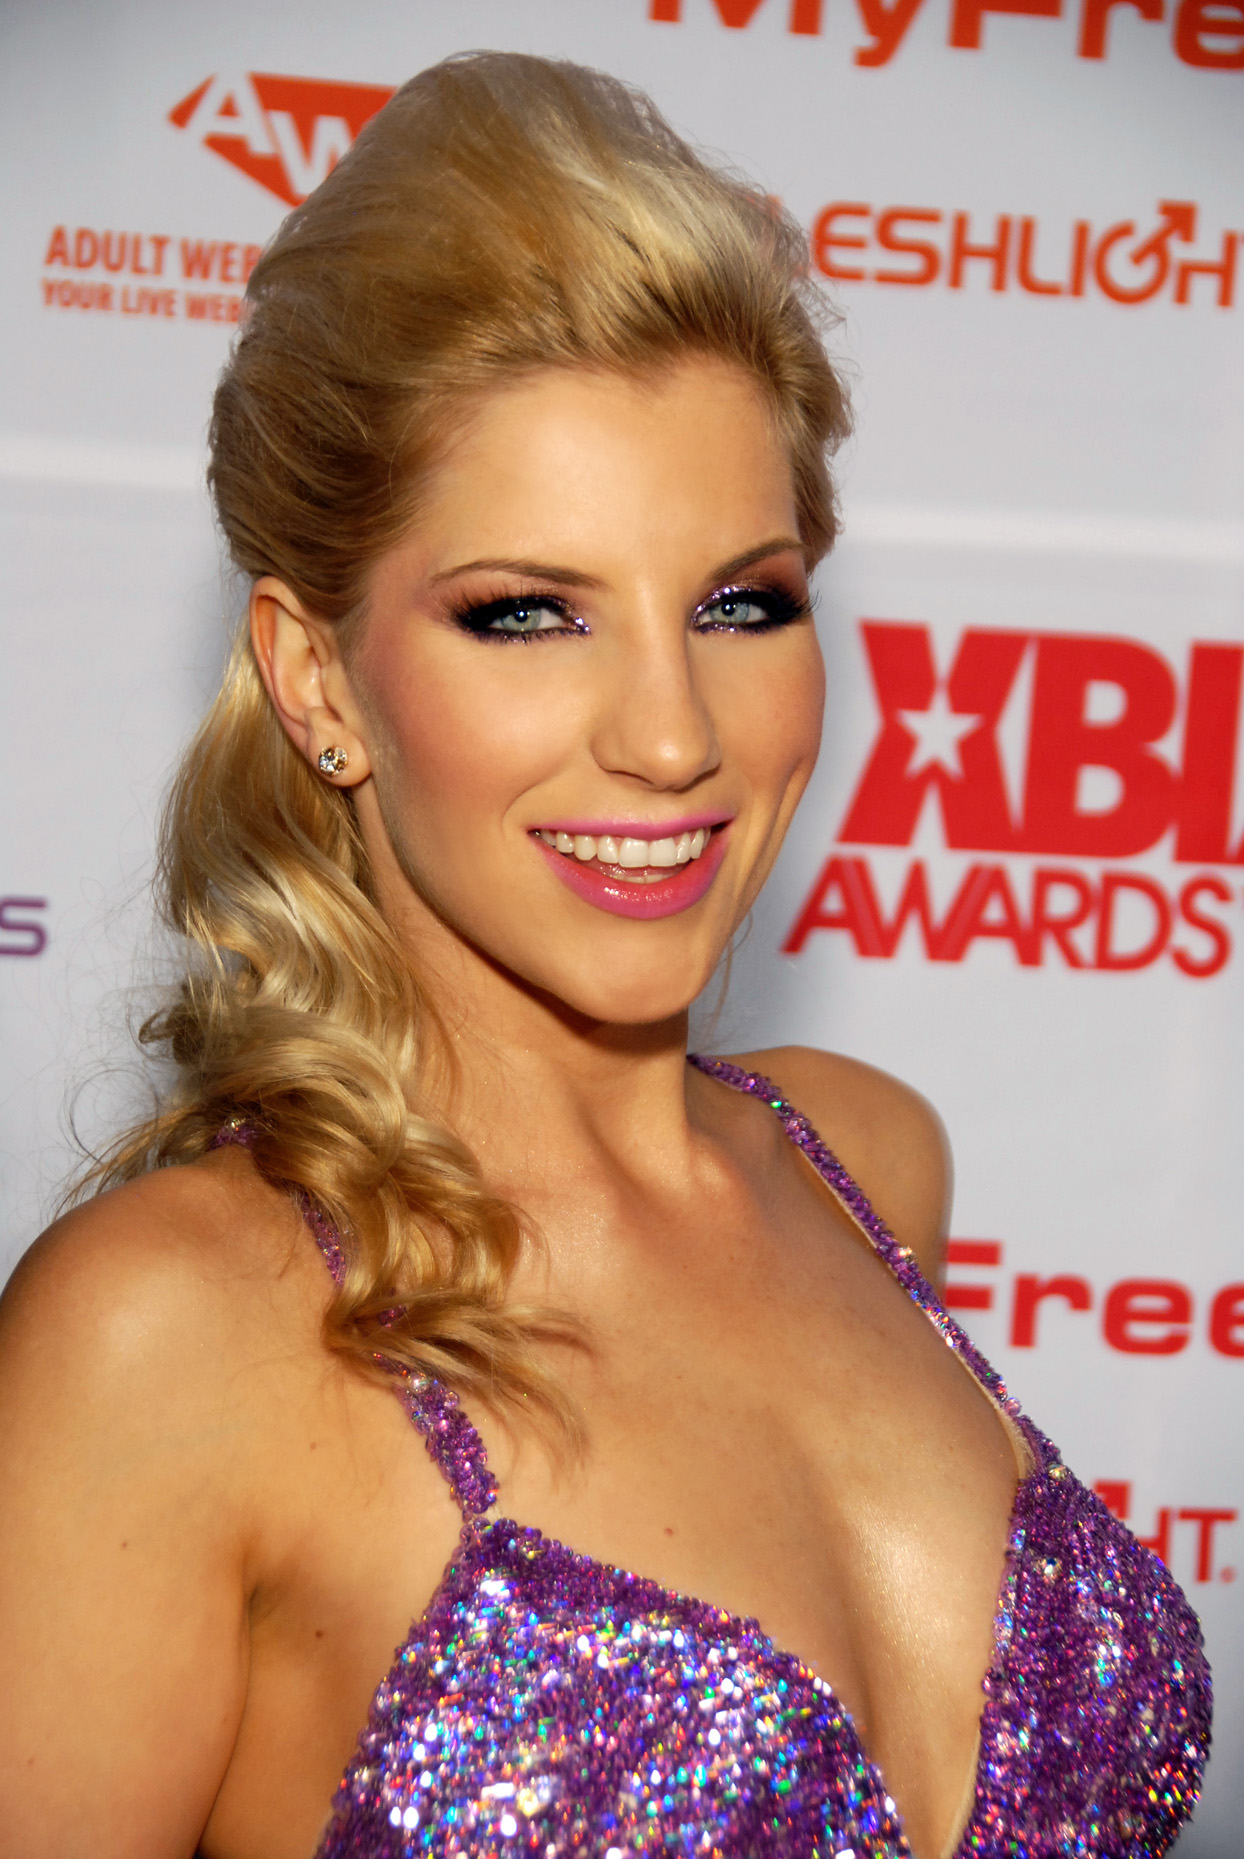 XBIZ Awards Red-Carpet Arrivals at the Hollywood Palladium, Hollywood, CA on February 9, 2011